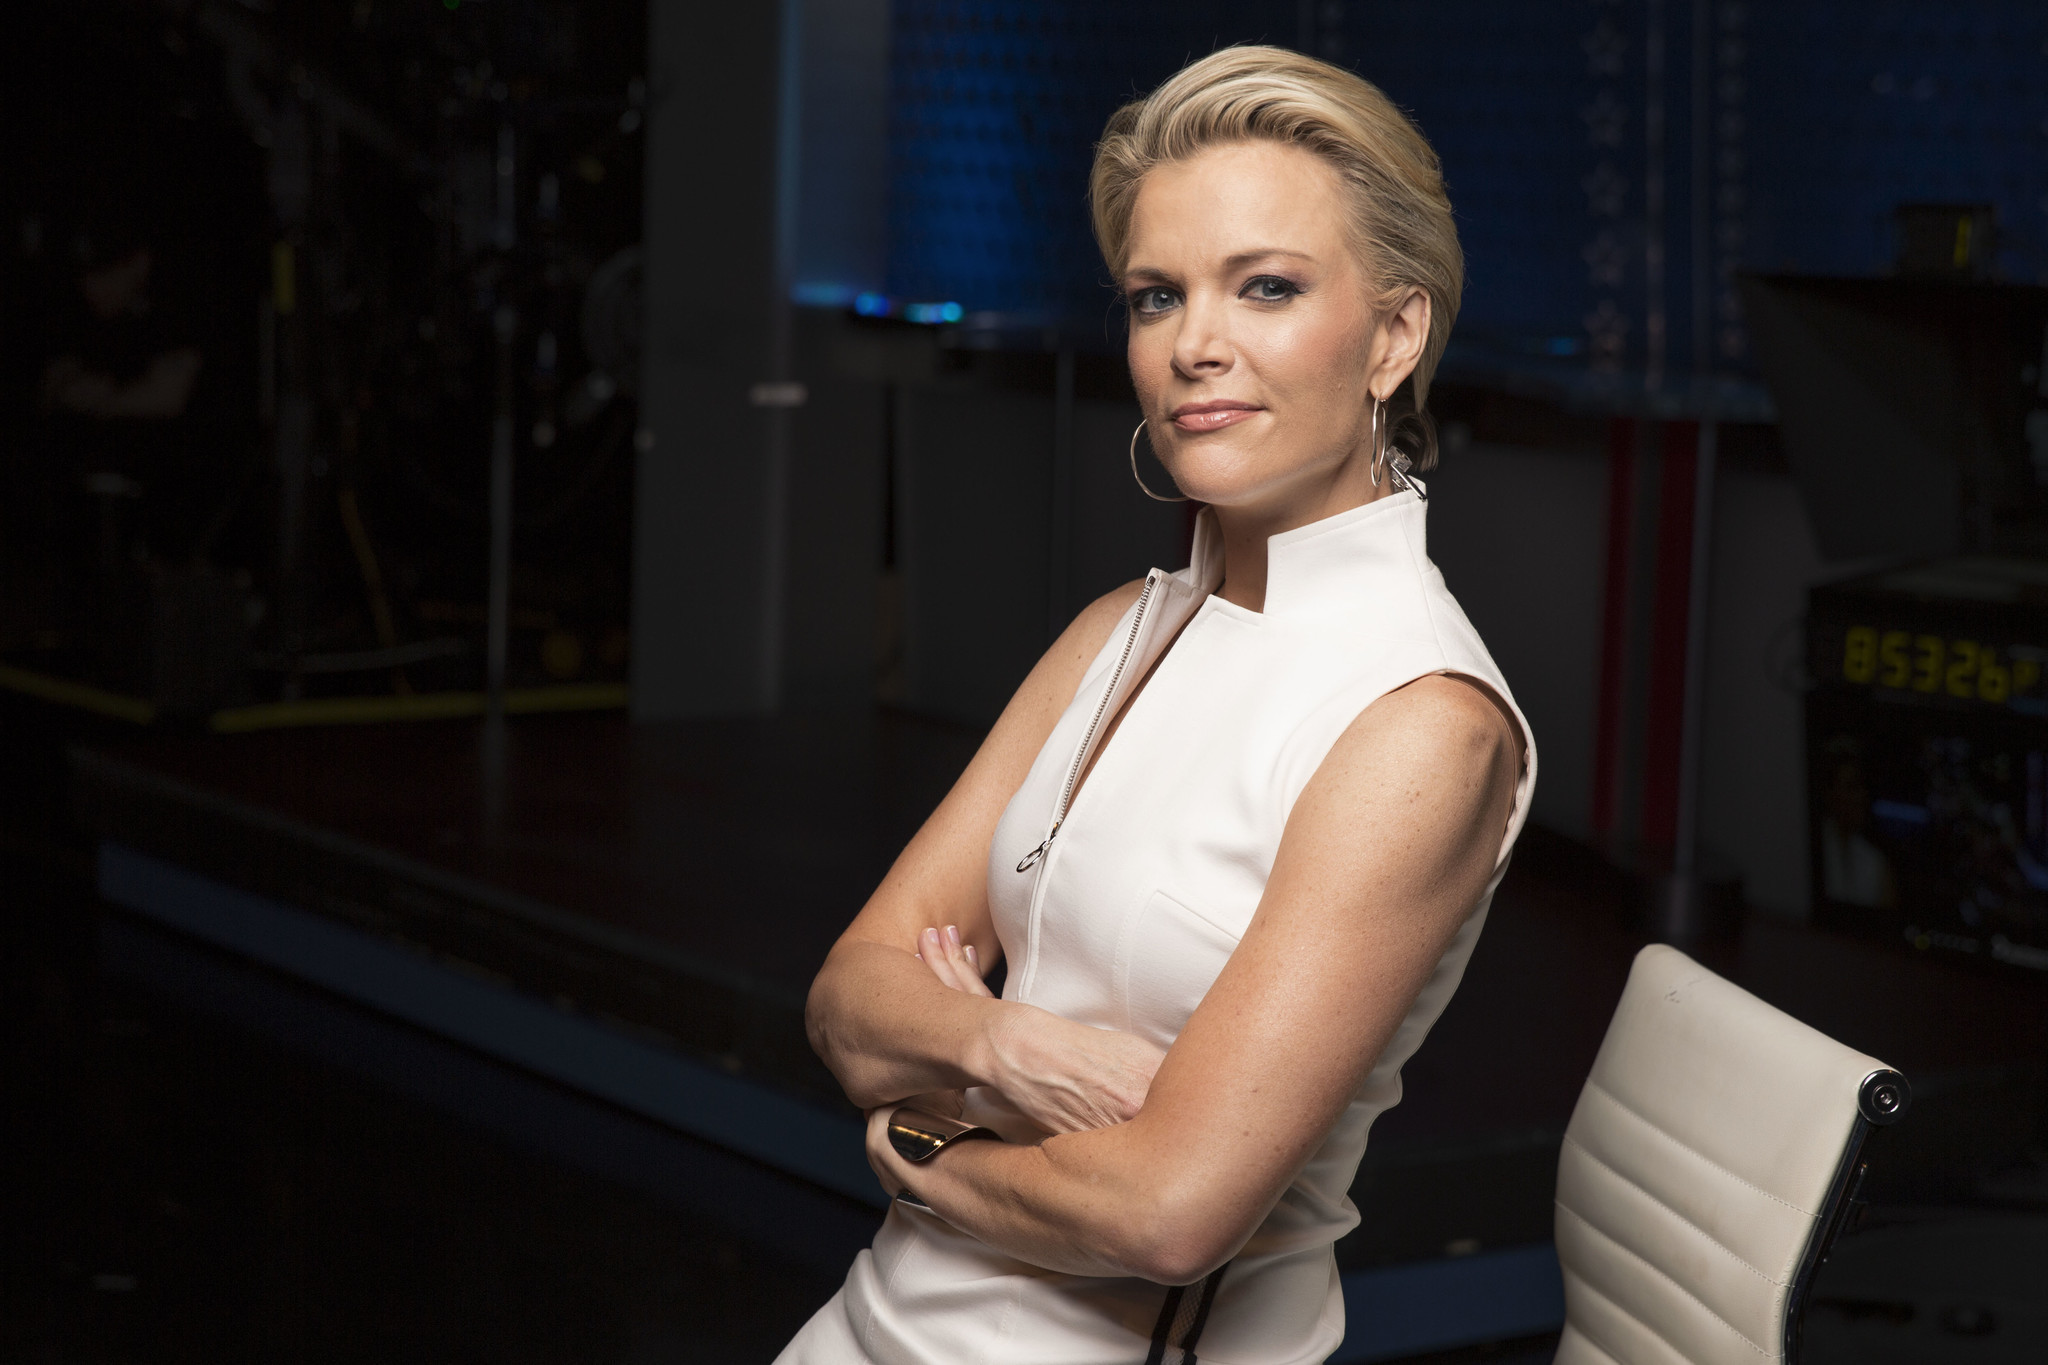 Popular anchor Megyn Kelly will leave Fox News after 12 years to join NBC